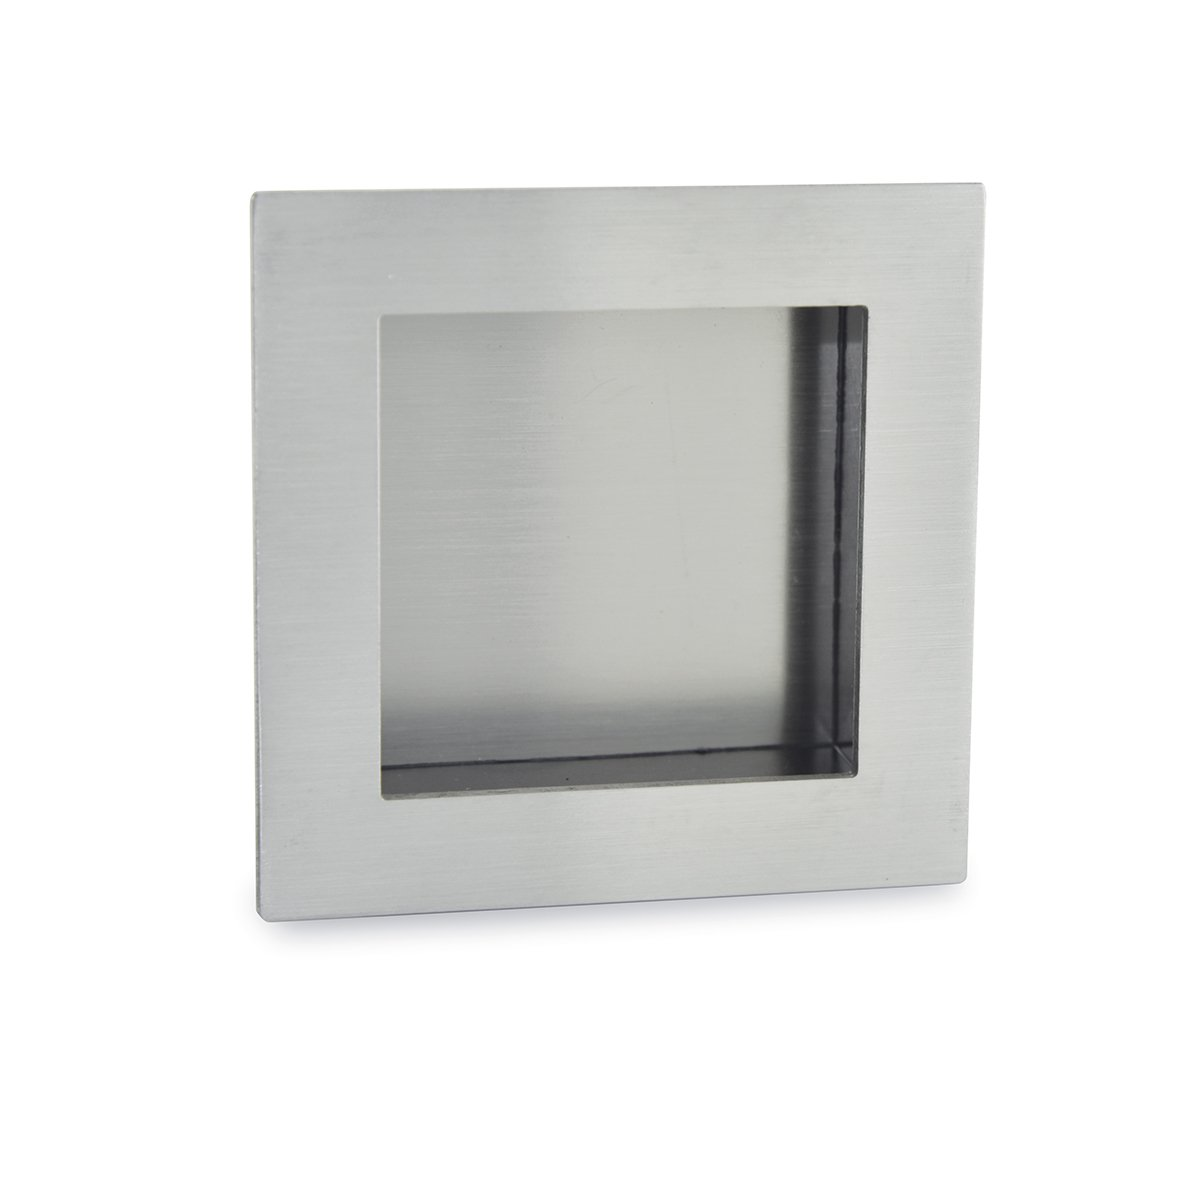 Jako WFH113X75PSS Square Flush Pull - Polish Stainless Steel, Size: 2 61/64''